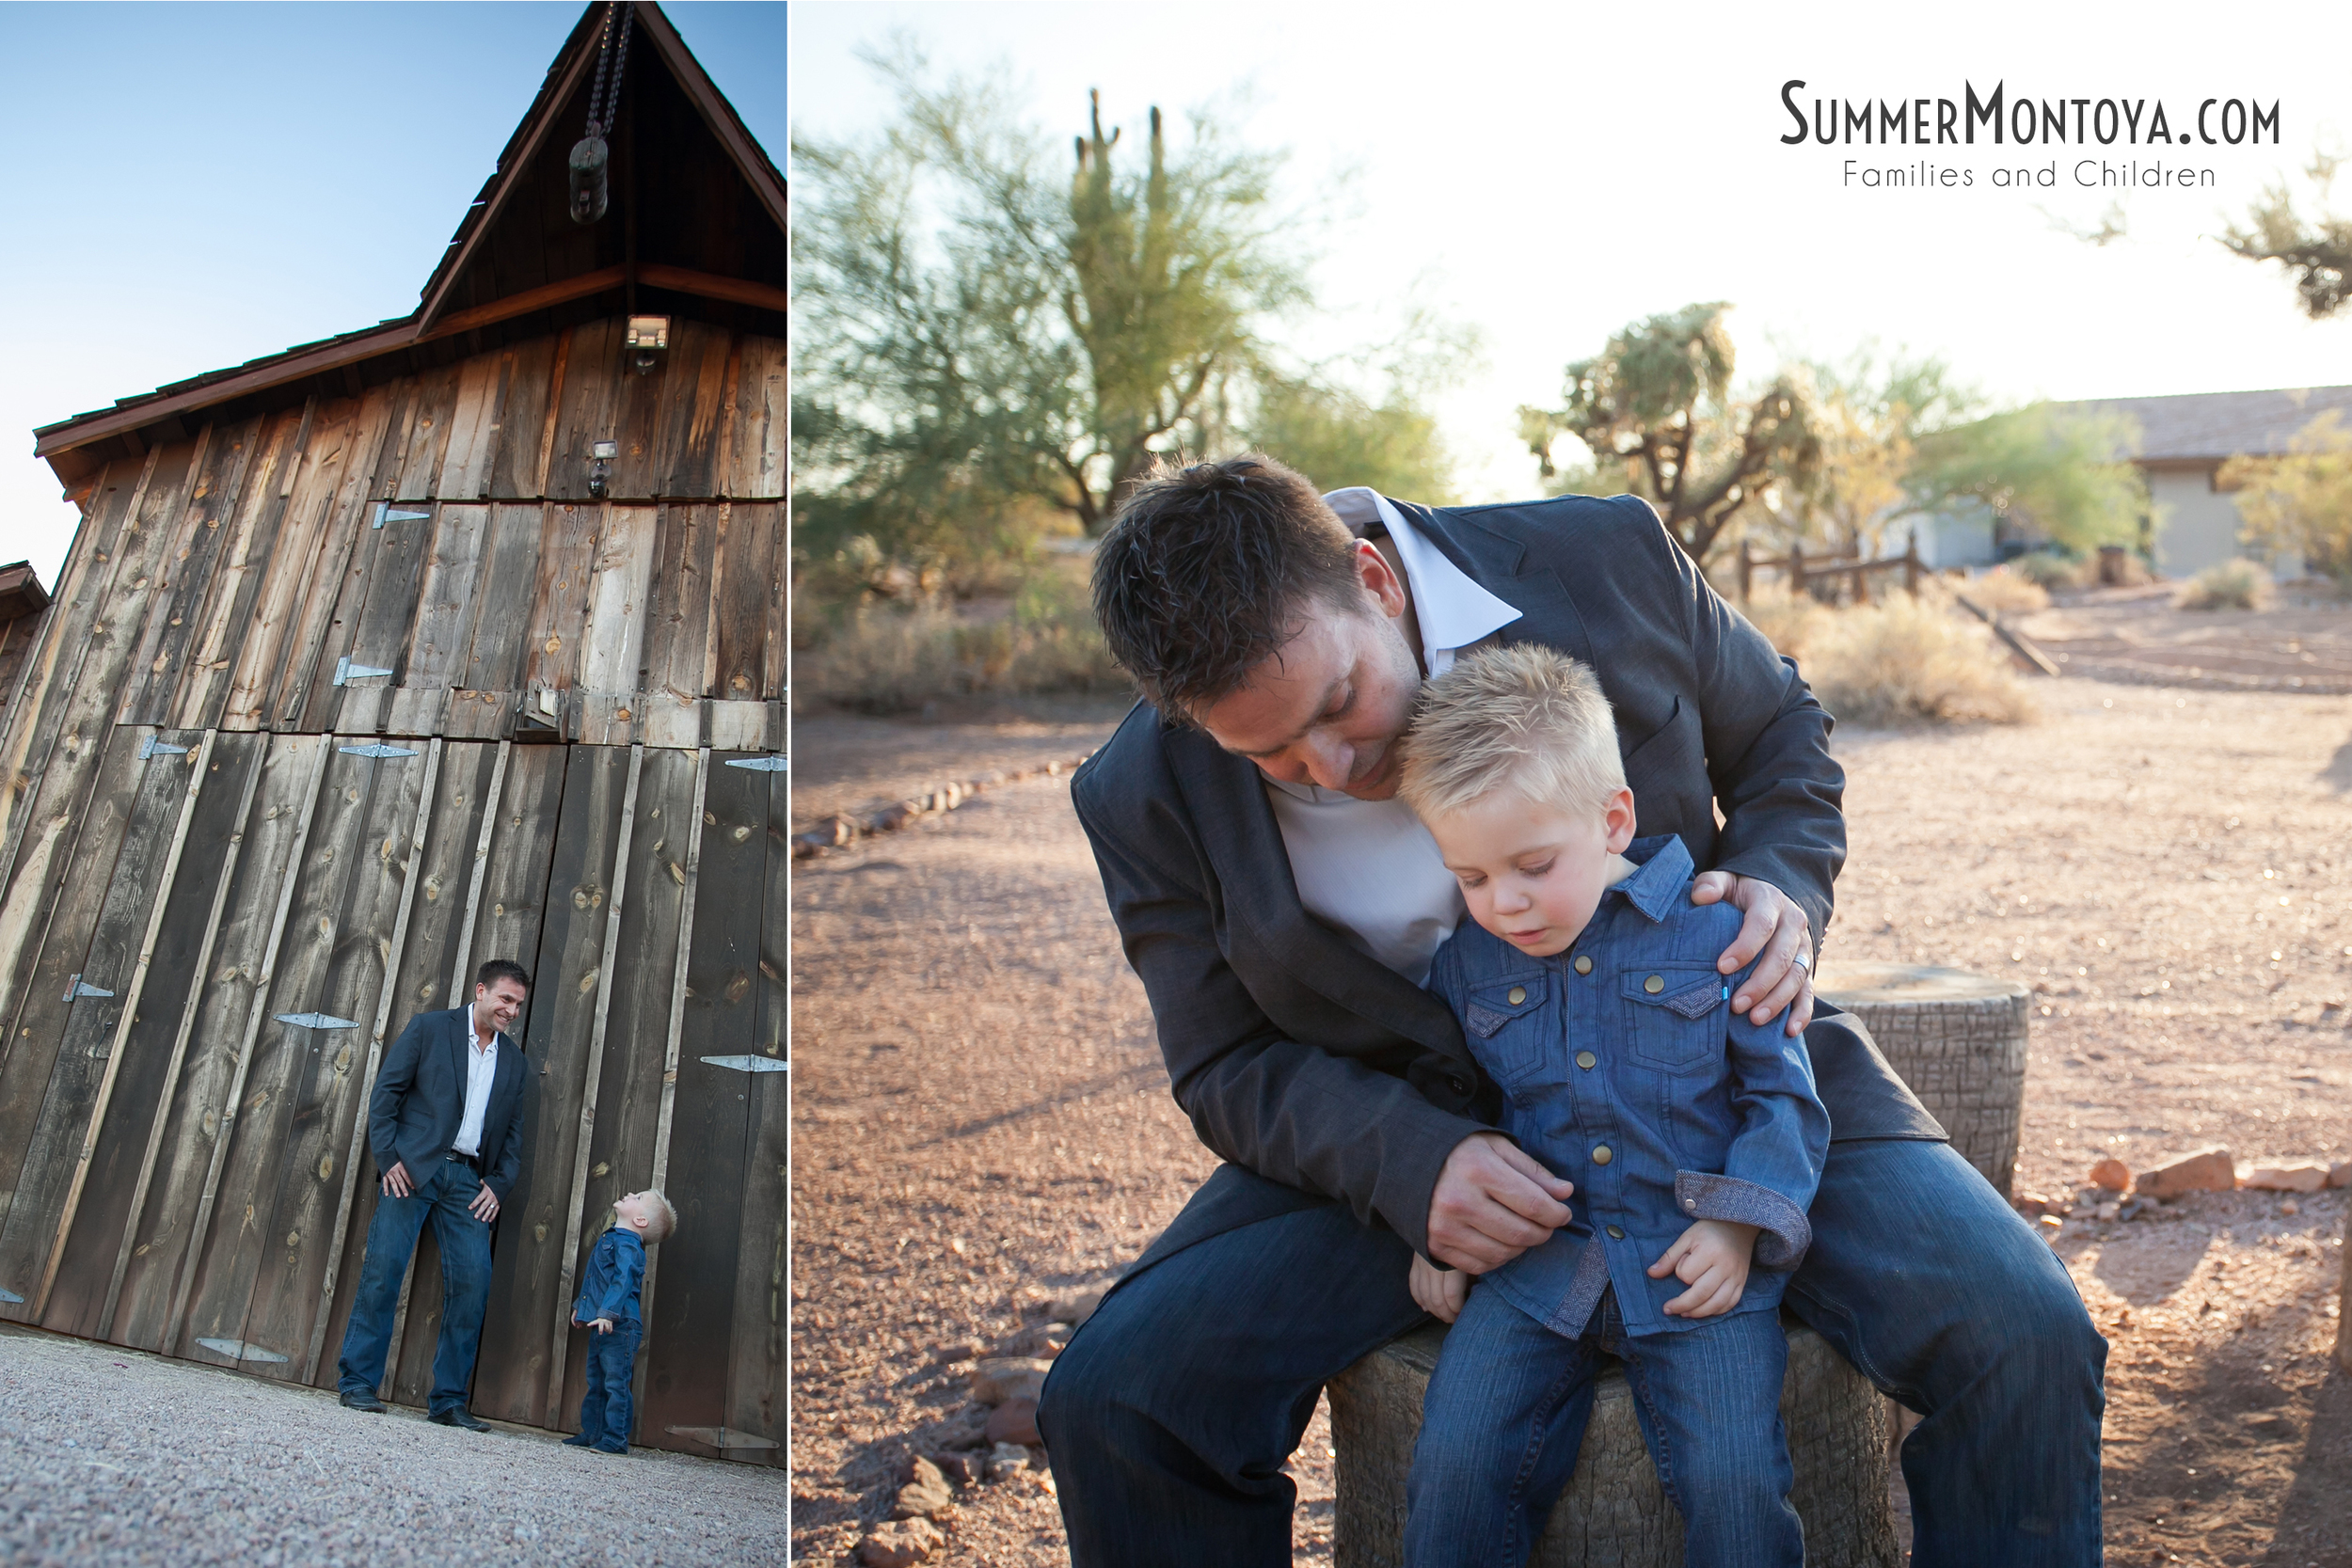 superstition-mountain-museum-family-03